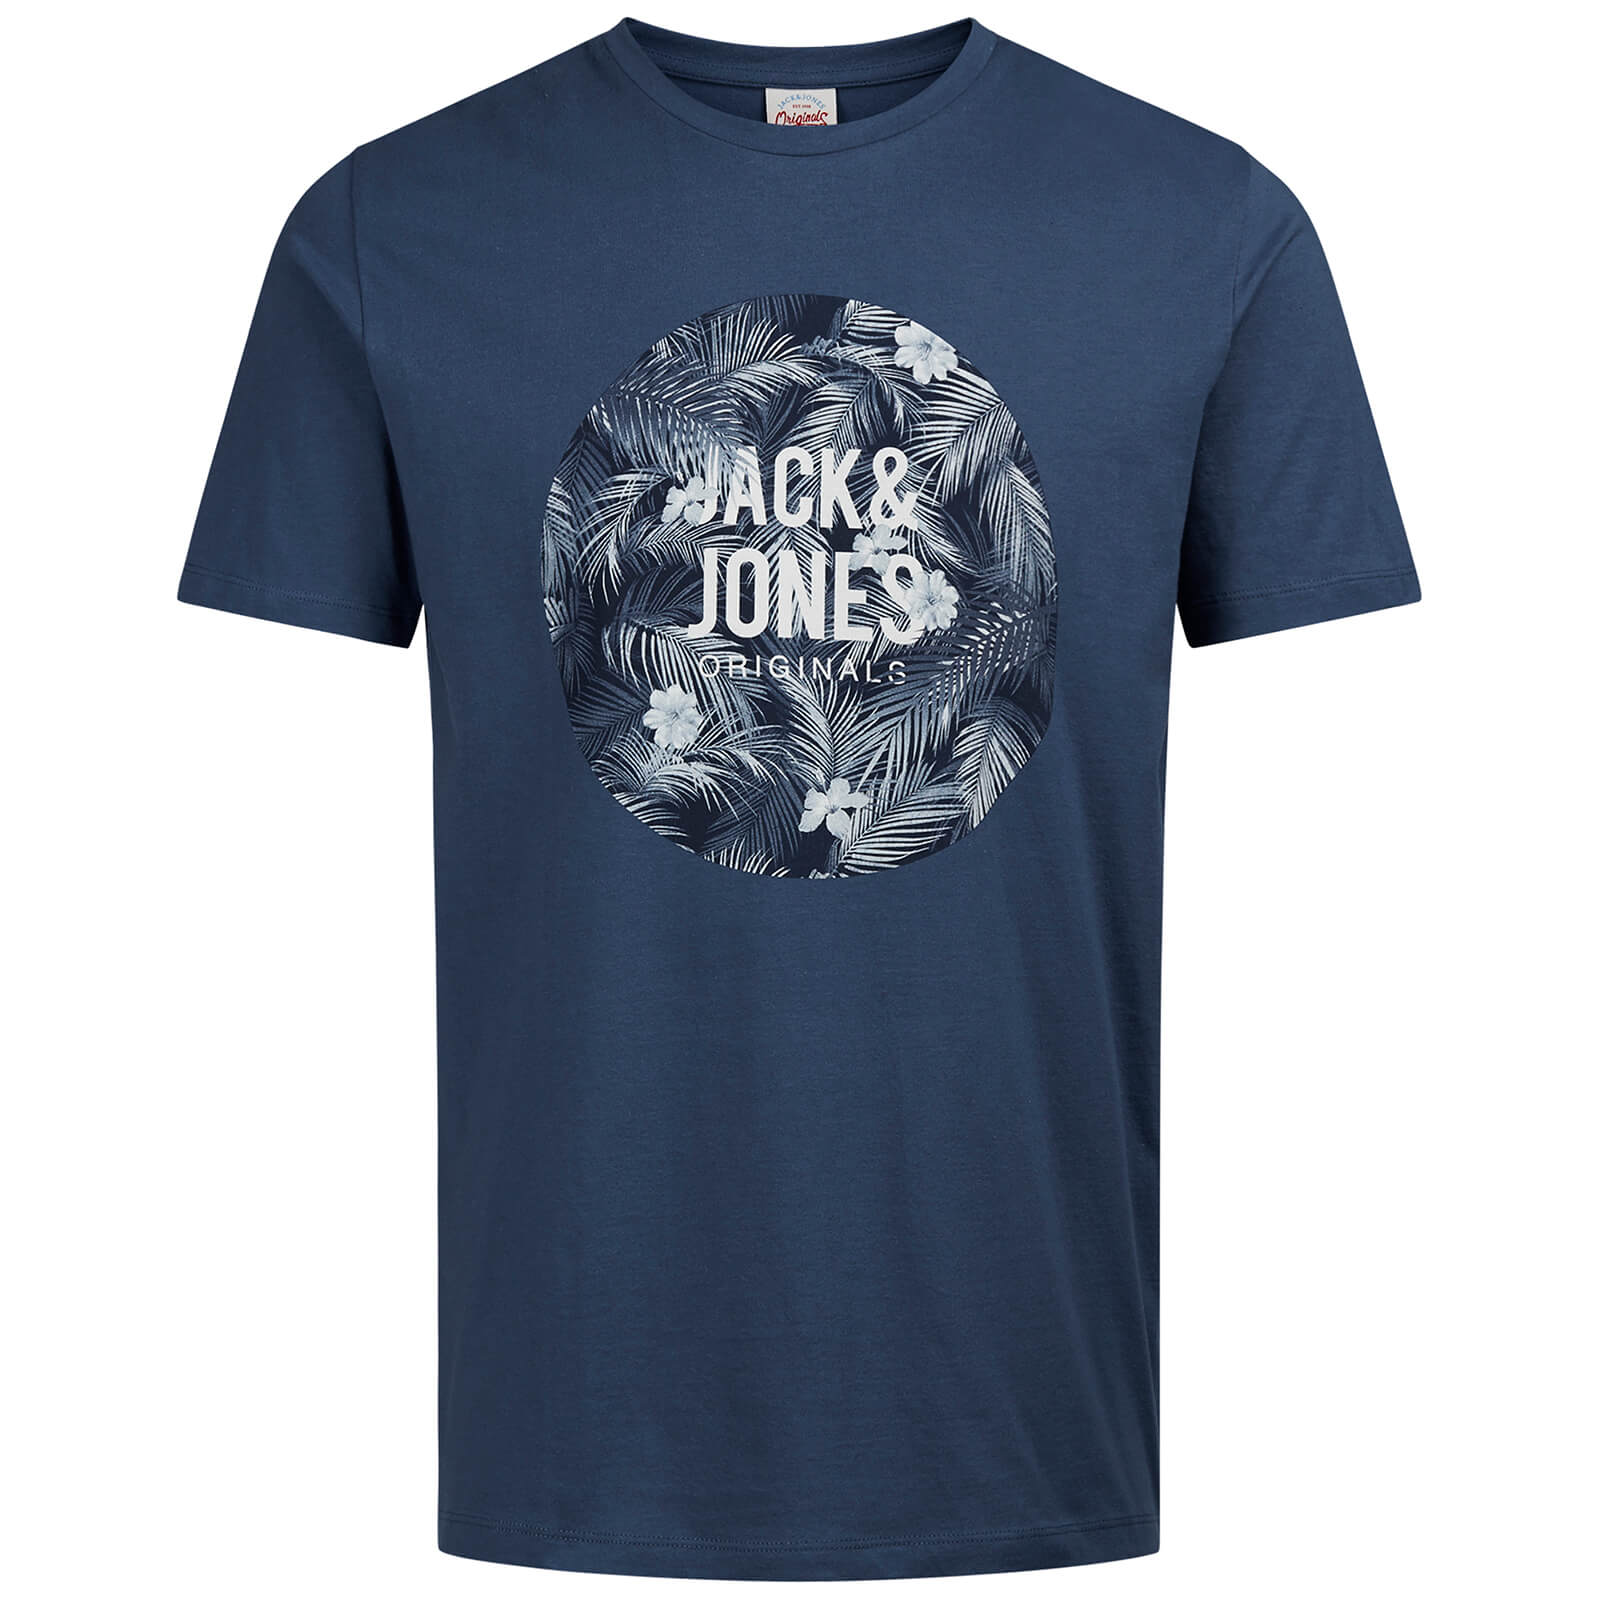 T-Shirt Homme Originals Newport Jack & Jones - Bleu